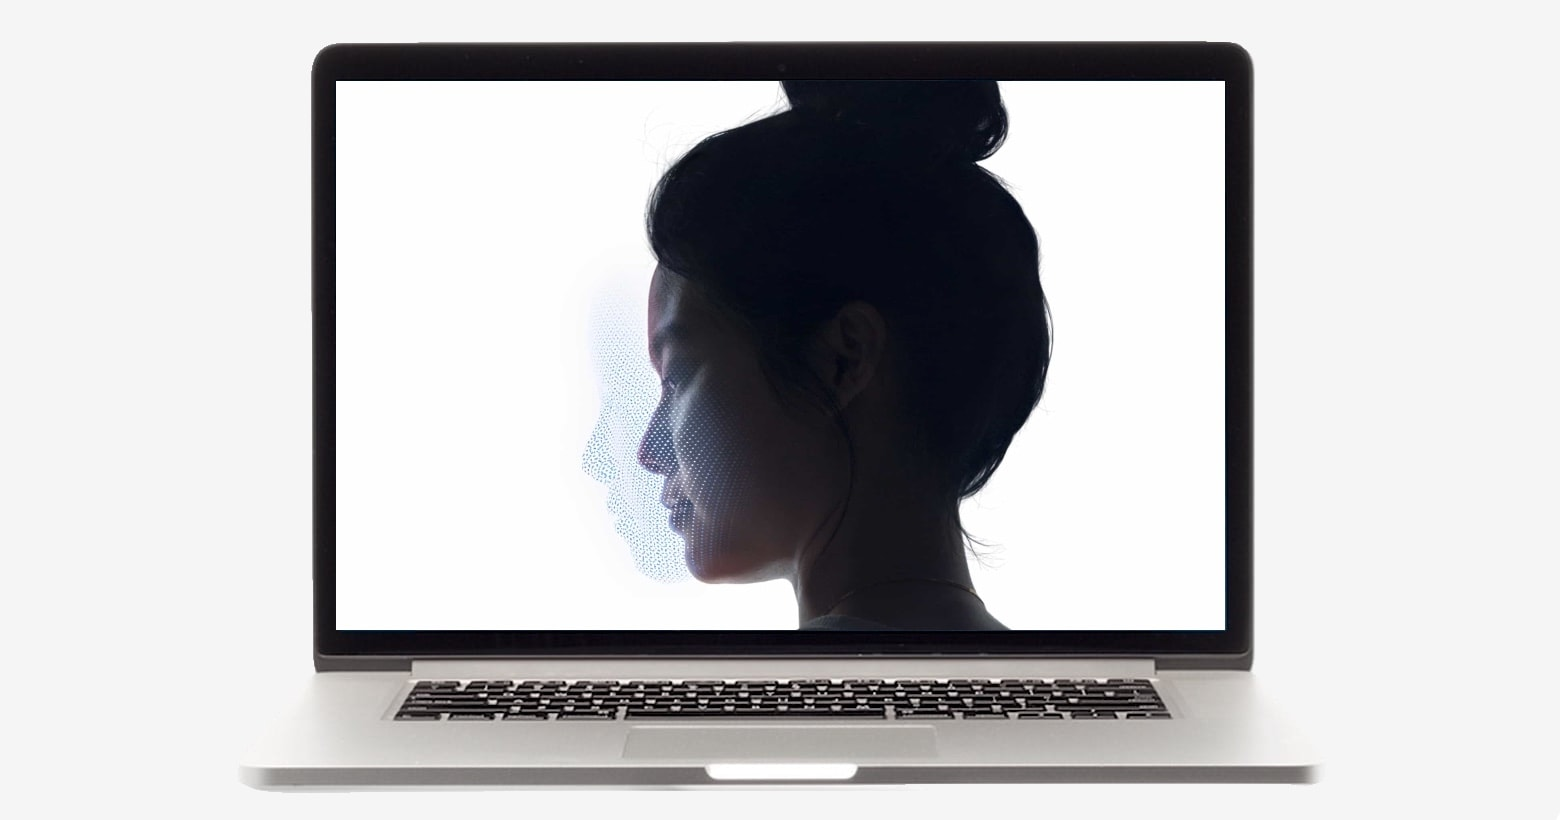 Face ID on MacBook